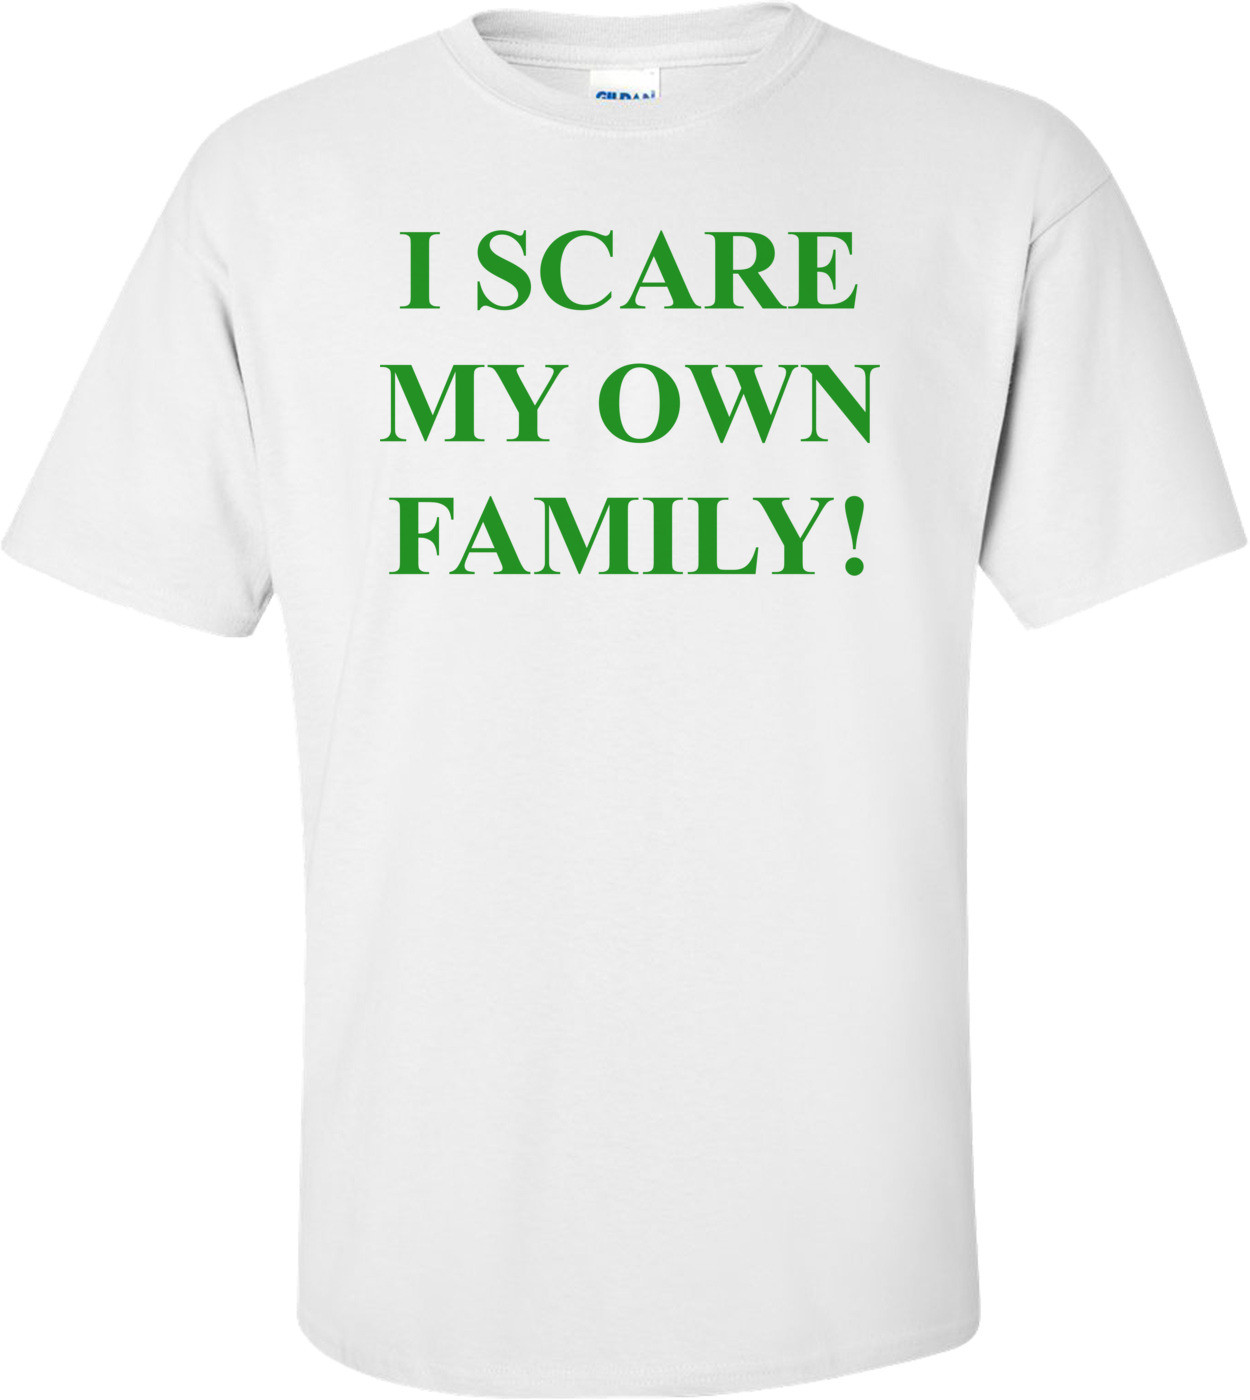 I SCARE MY OWN FAMILY! Shirt